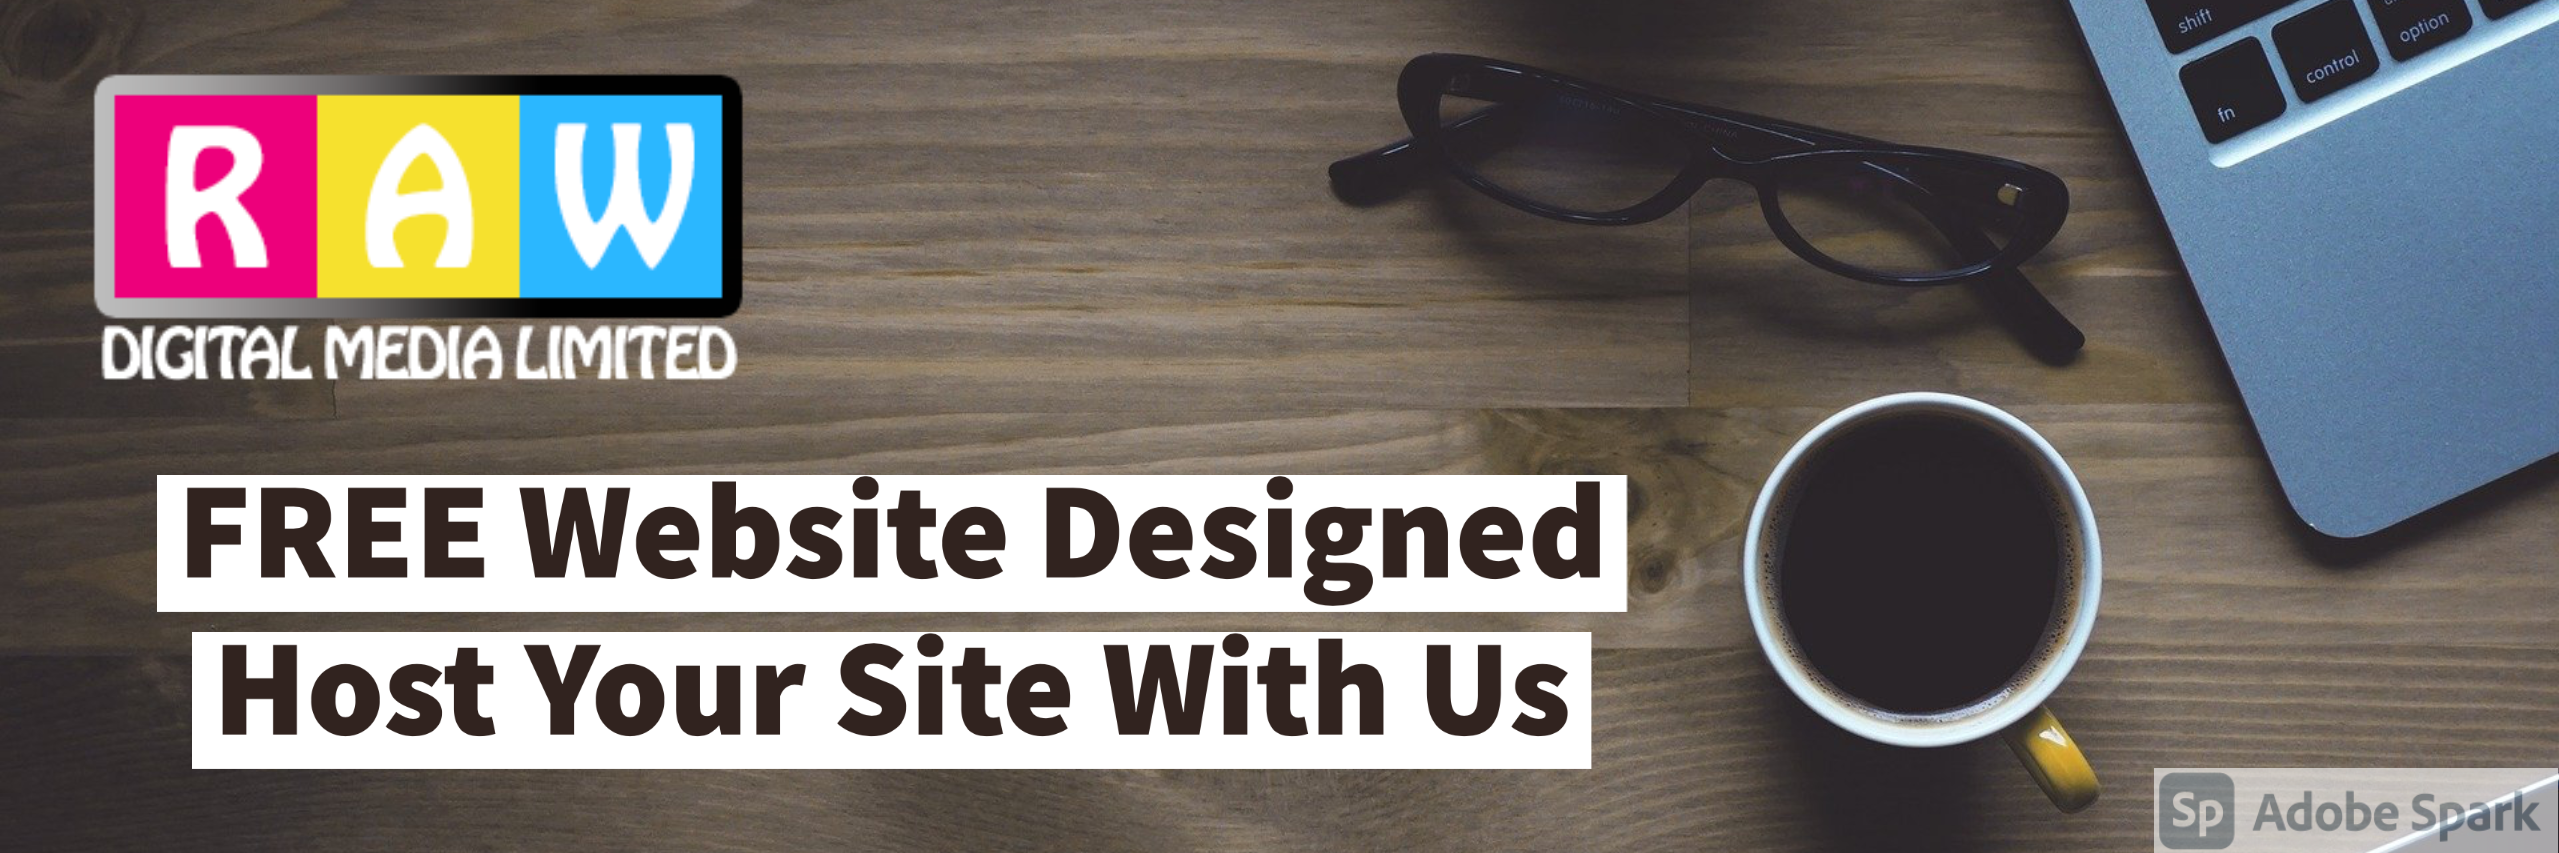 Get a FREE website designed by our web team when you host your website with us. Get in touch to find out more.